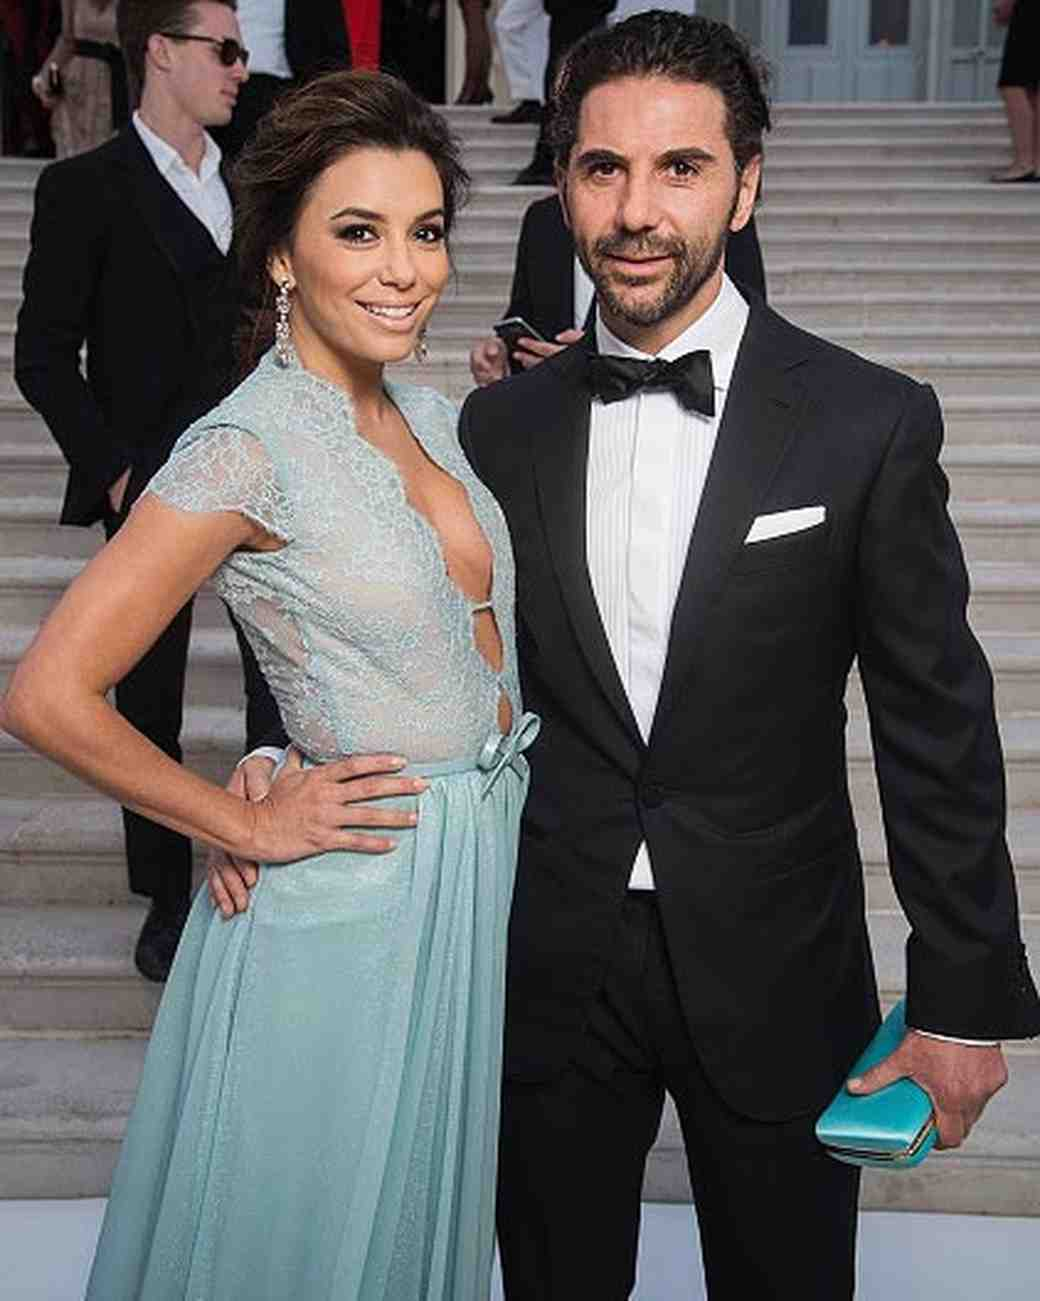 Eva Longoria Opens Up About Newlywed Bliss with Husband Jose Bastón